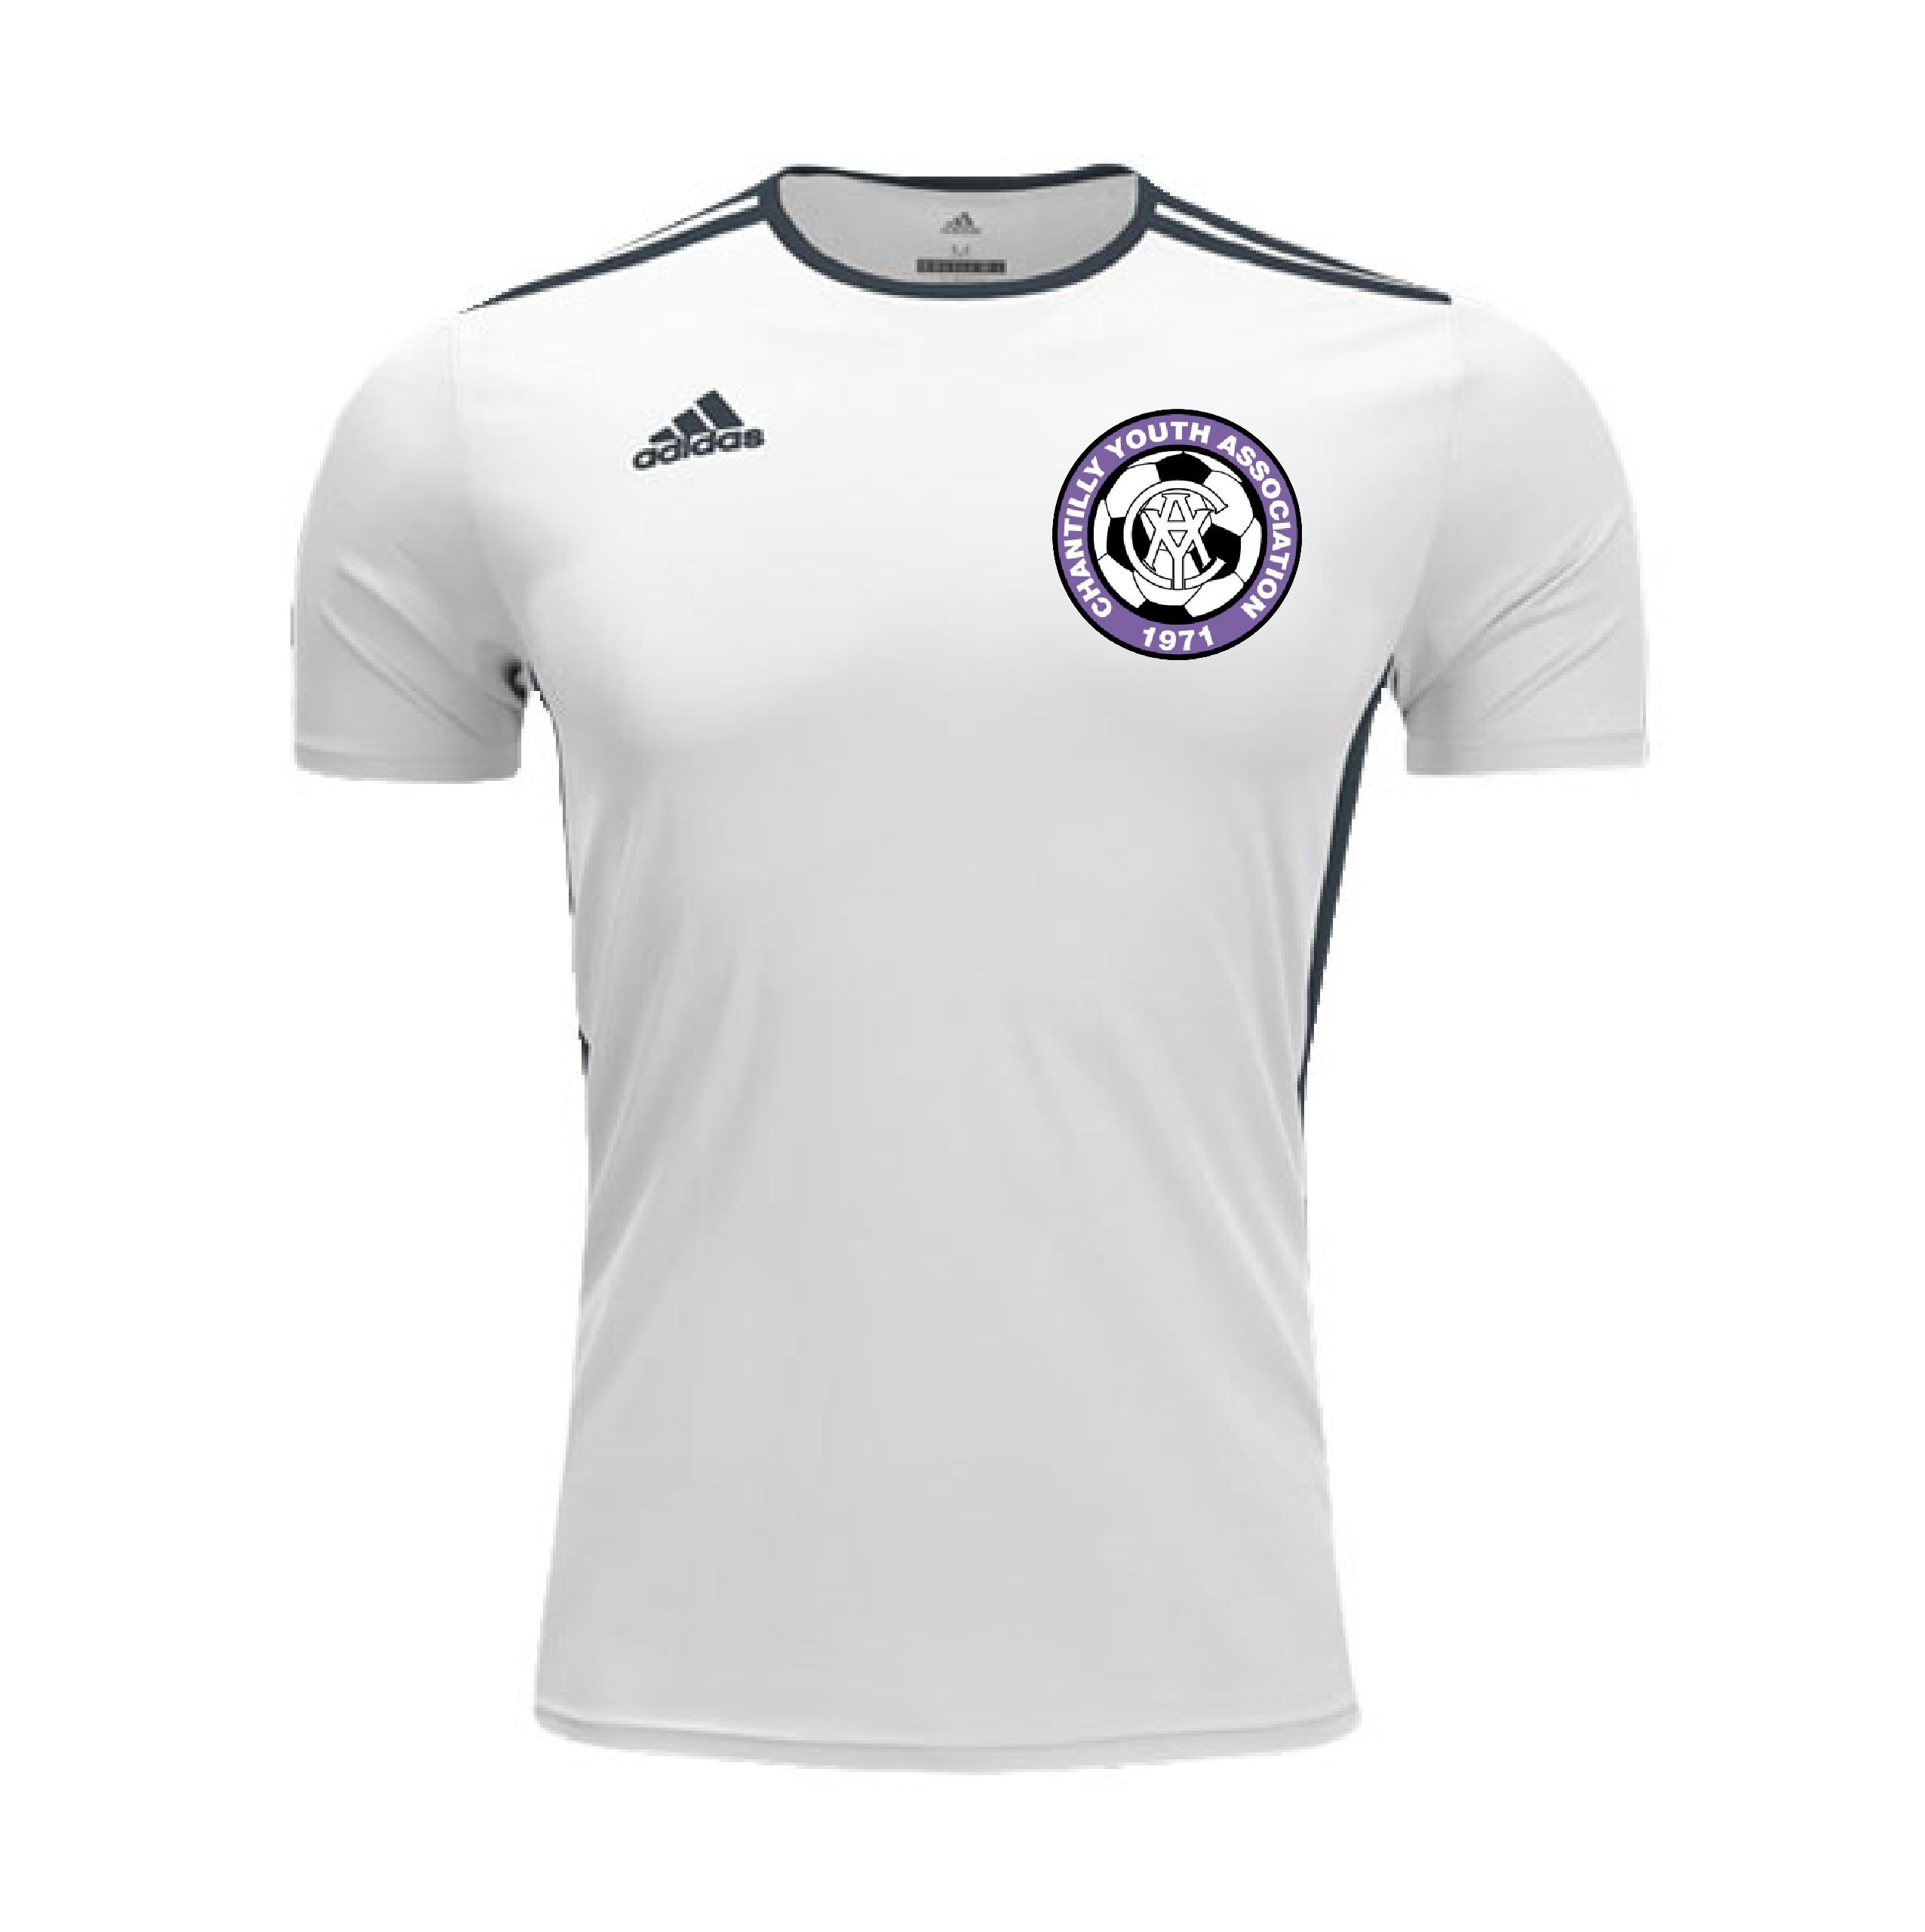 5905886ef For any questions or concerns regarding Rec uniforms please reach out to  the Soccer Post directly